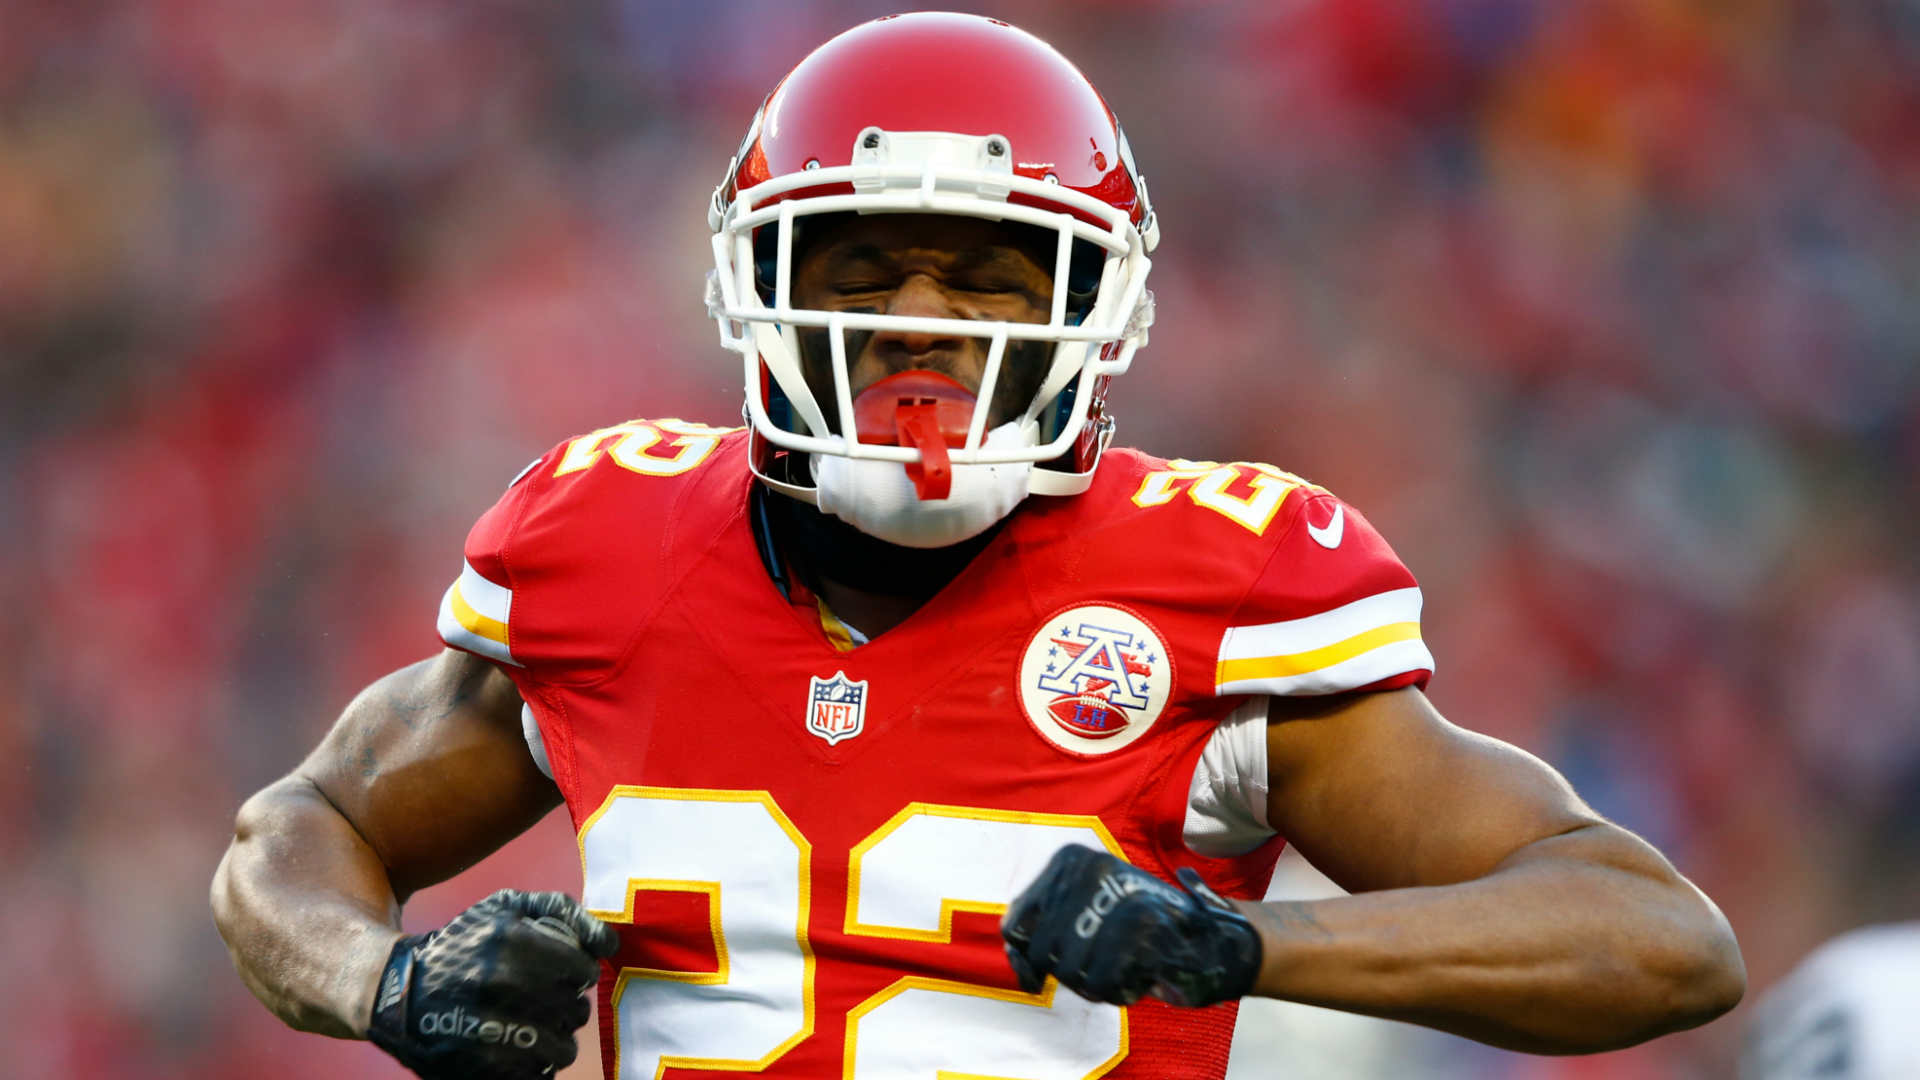 Marcus Peters fined $24k for unsportsmanlike conduct vs Jets